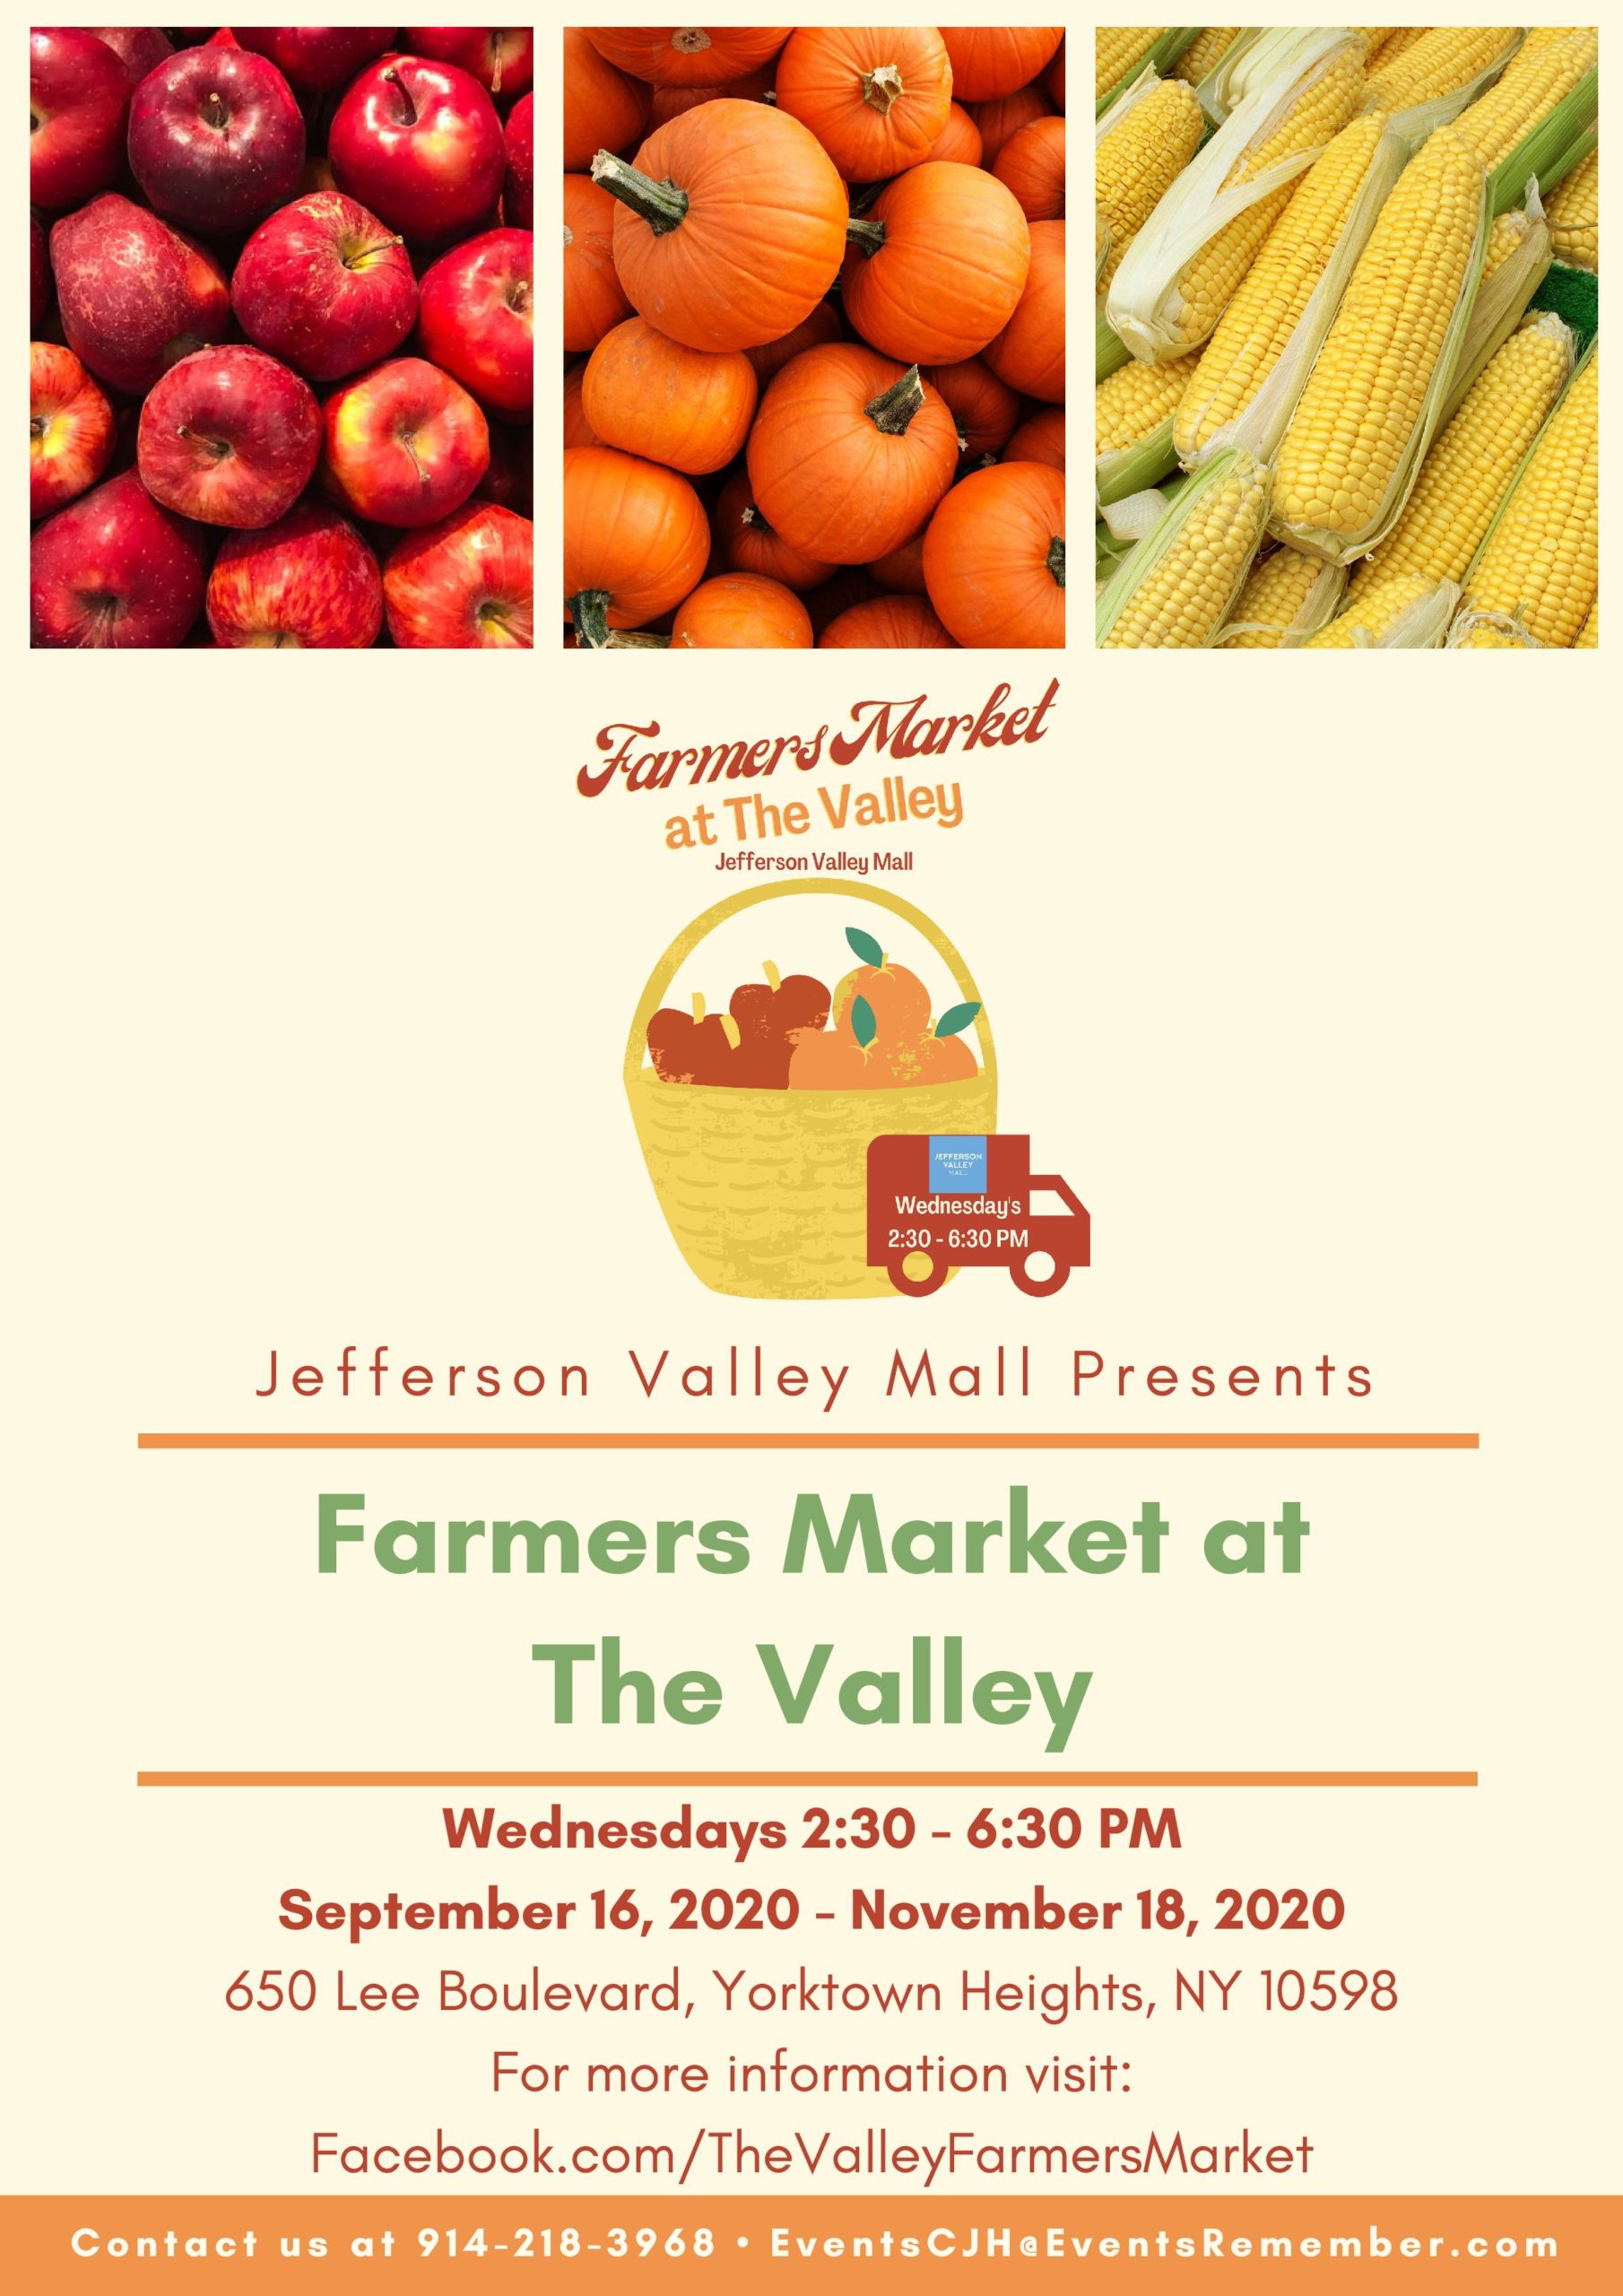 Farmers Market at The Valley